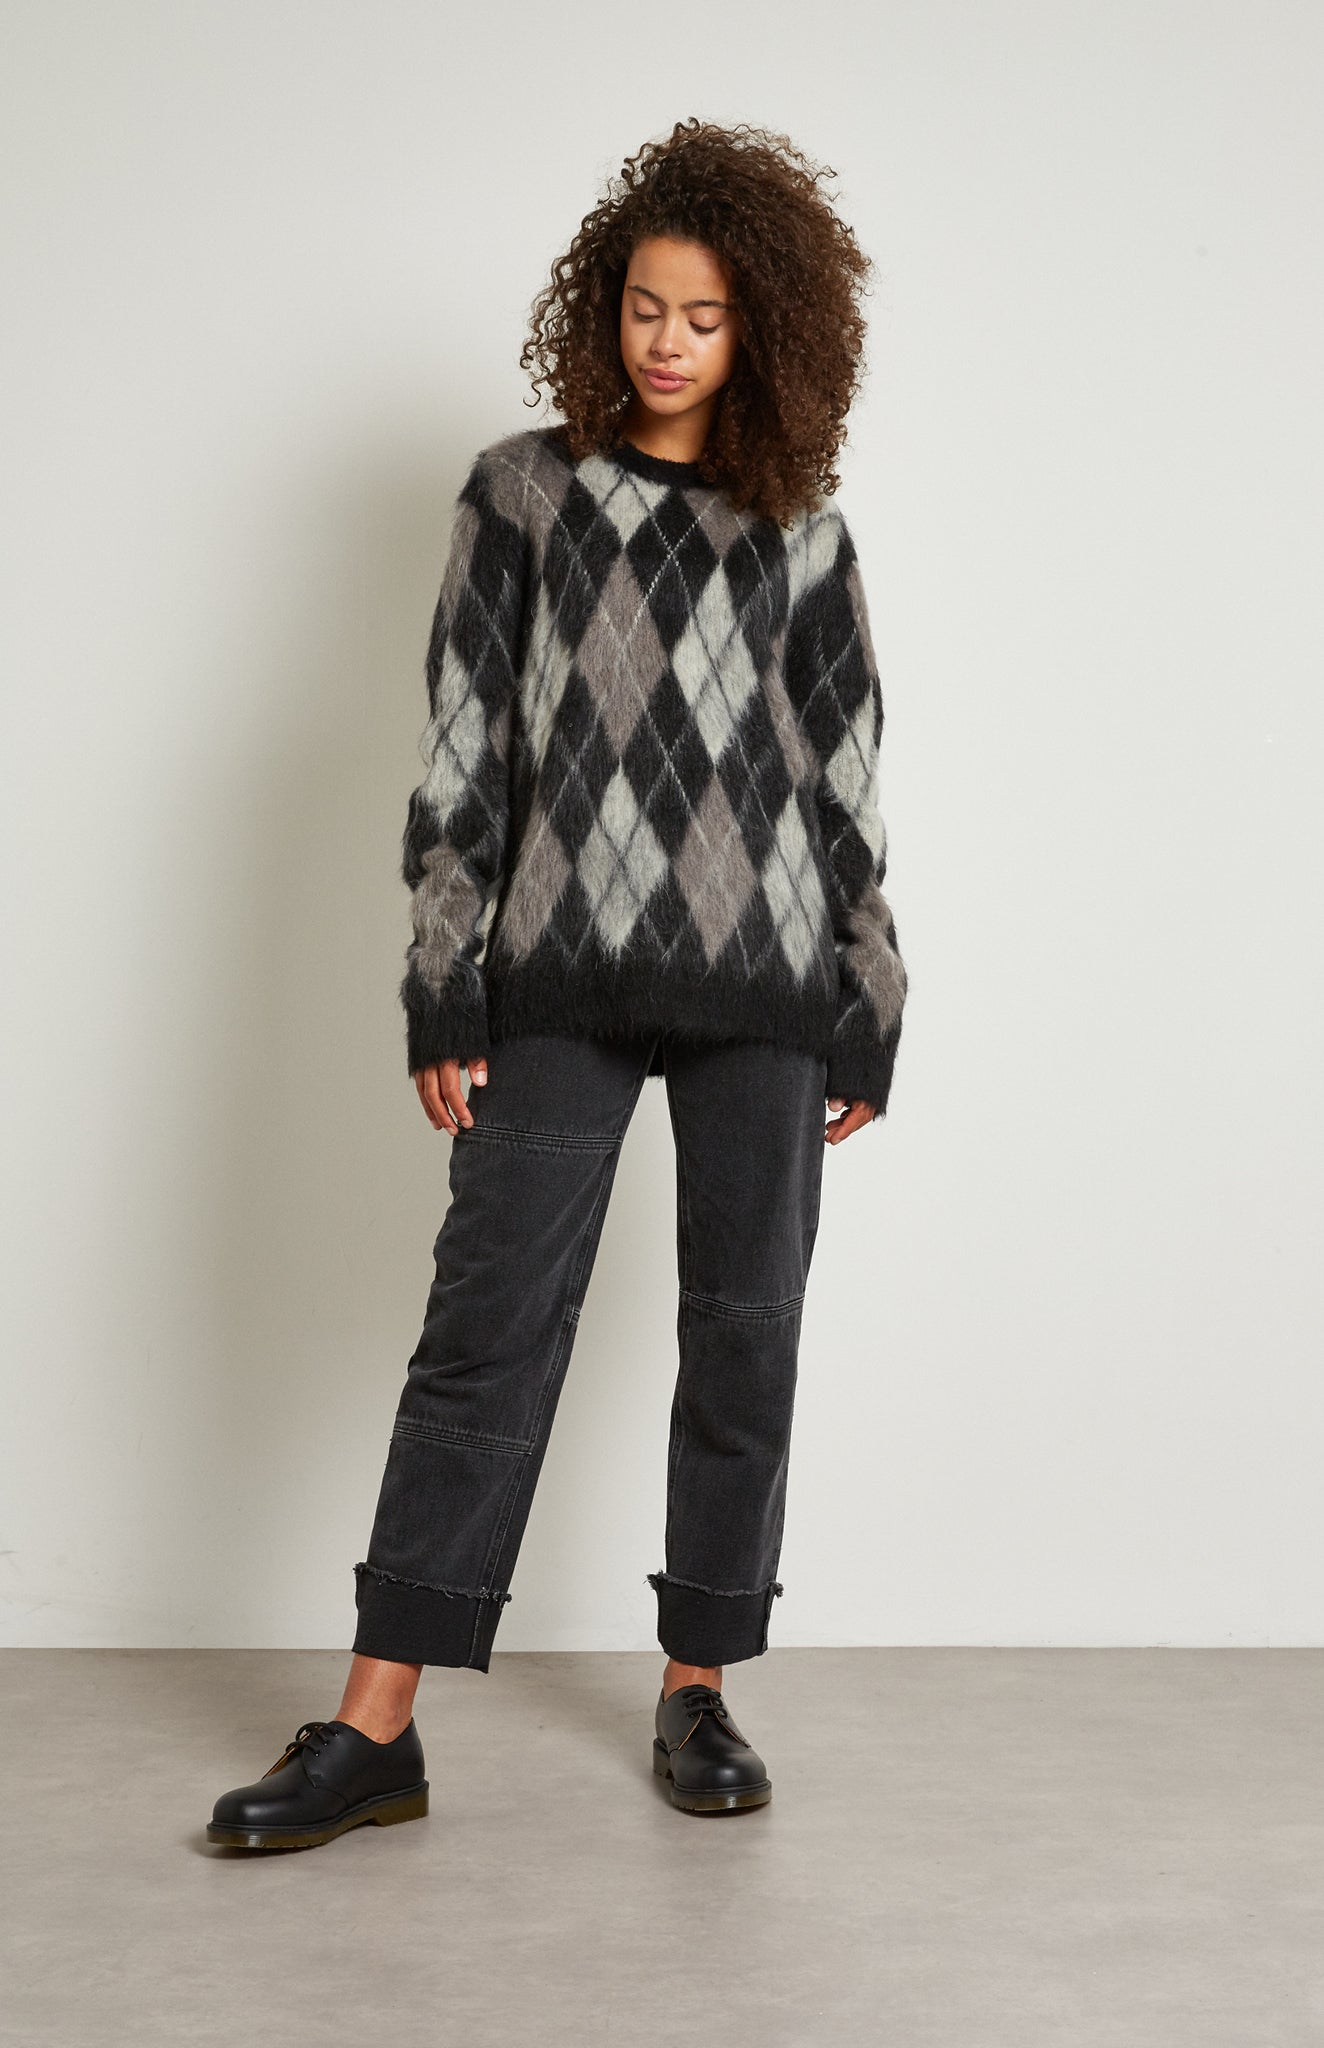 Pringle Reissued Unisex Monochrome Argyle Jumper on female model